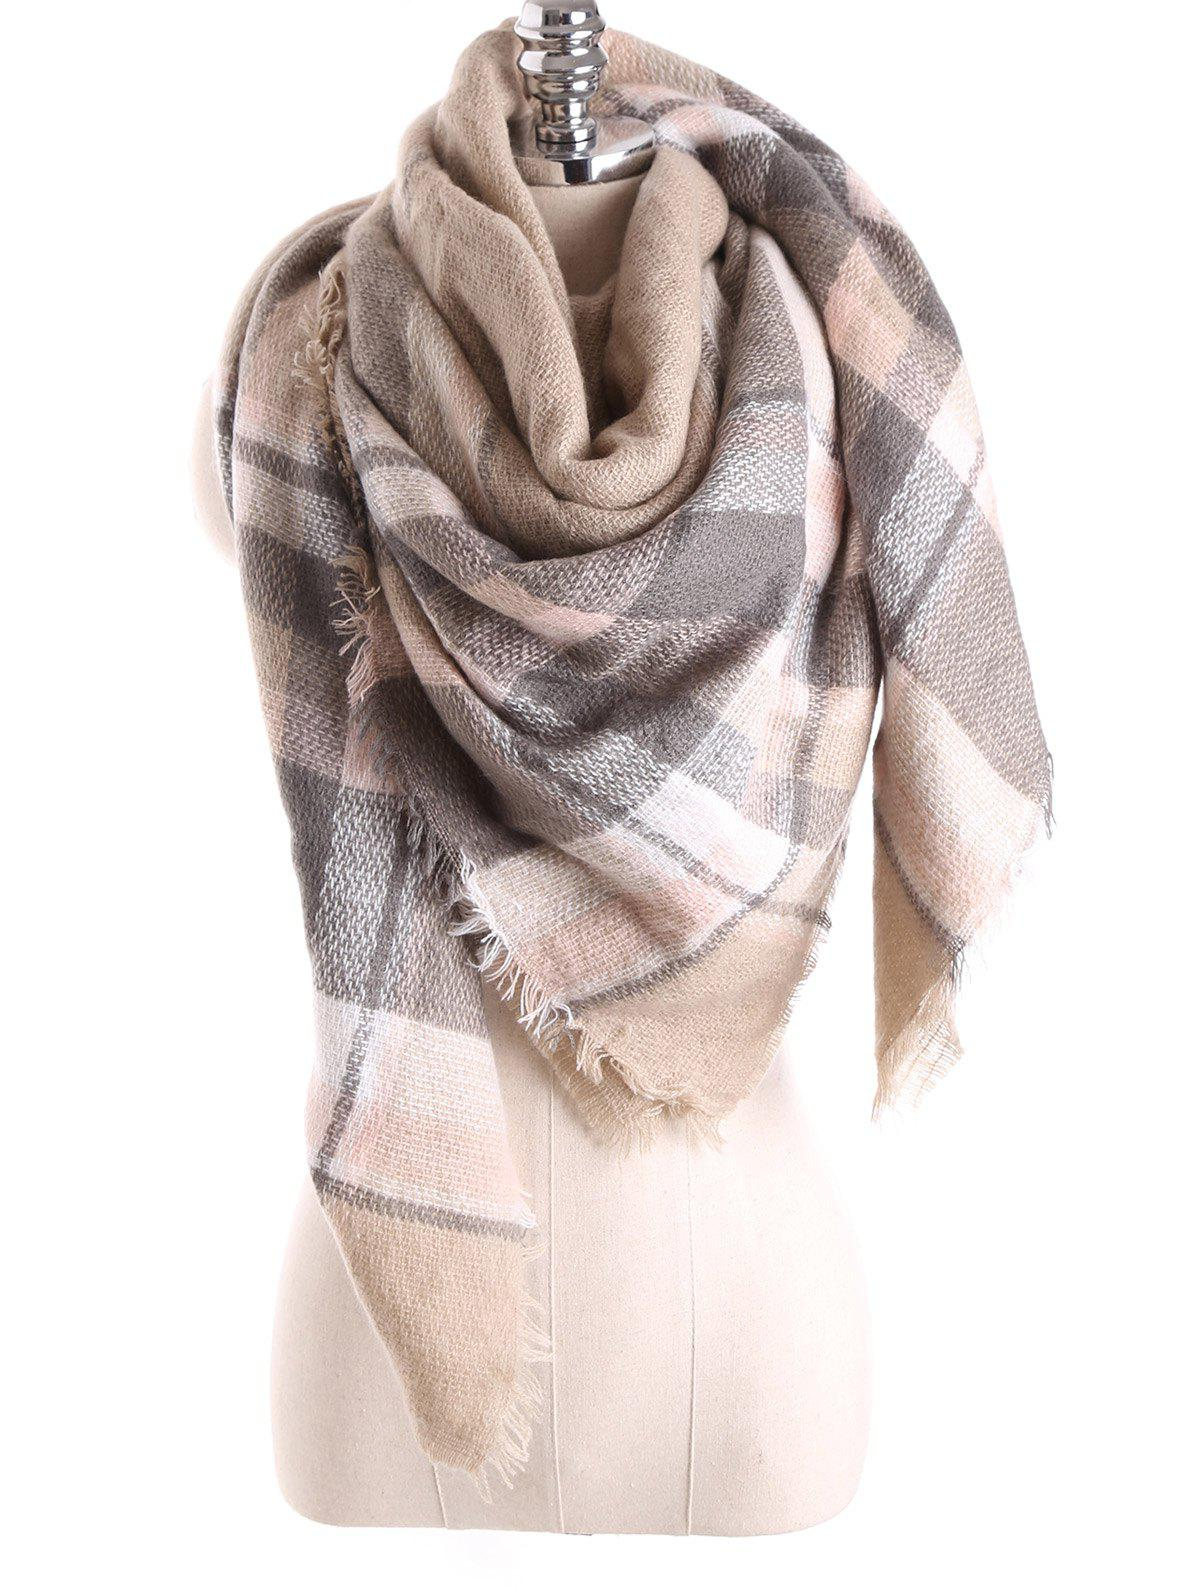 Warm Tartan Plaid Blanket Shawl ScarfACCESSORIES<br><br>Color: LIGHT KHAKI; Scarf Type: Scarf; Group: Adult; Gender: For Women; Style: Fashion; Material: Acrylic; Season: Fall,Winter; Scarf Length: 140CM; Scarf Width (CM): 140CM; Weight: 0.270kg; Package Contents: 1 x Scarf;